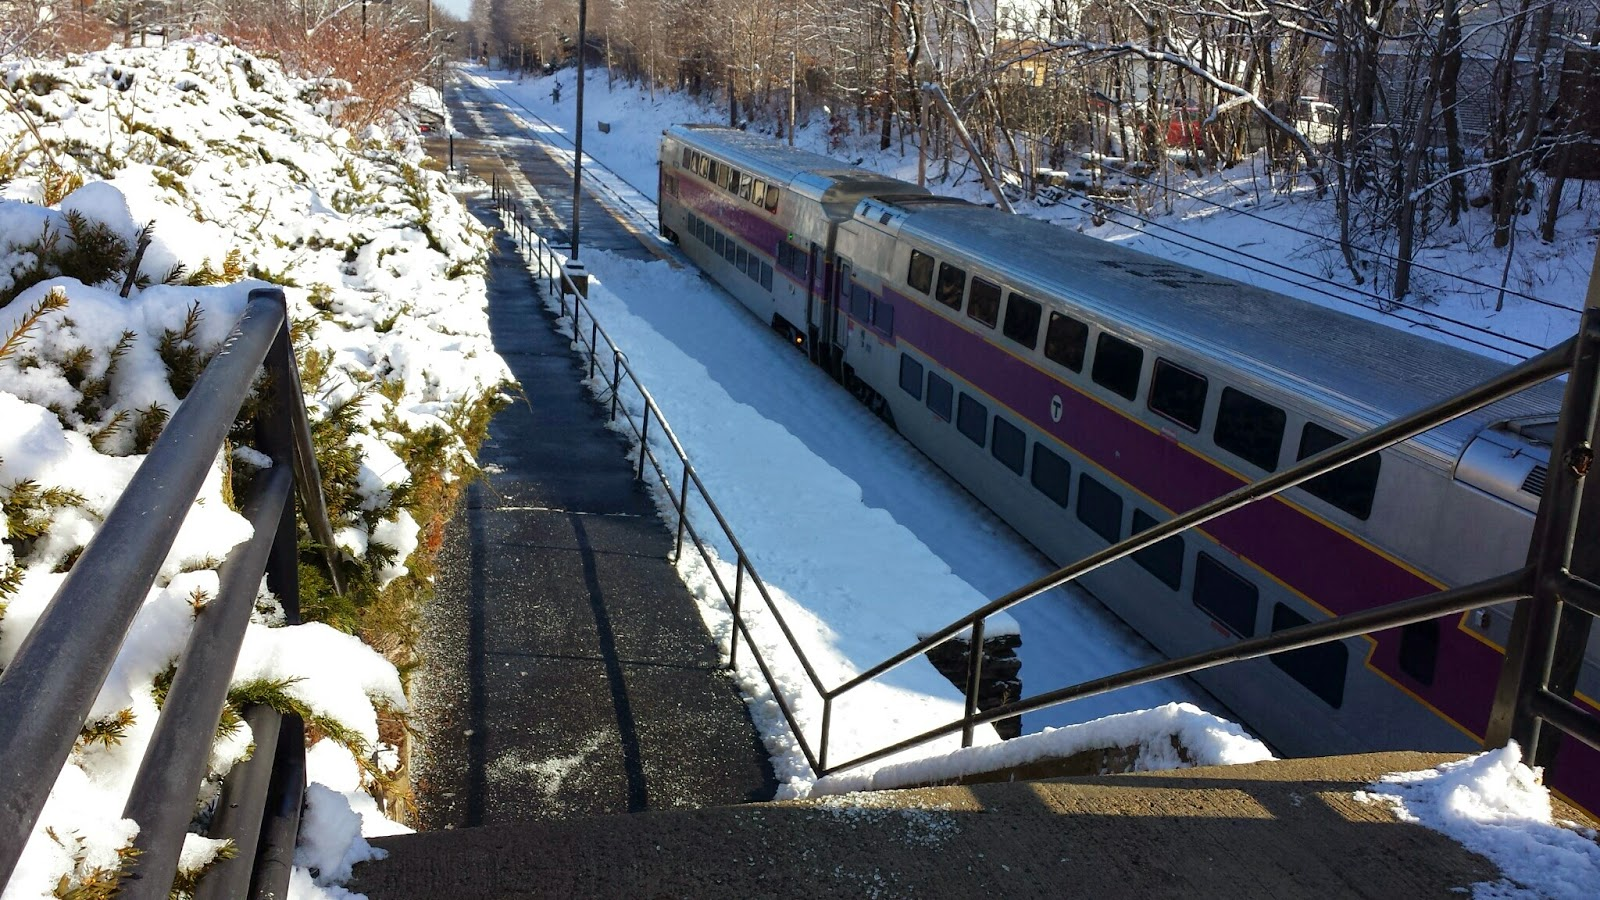 the train headed out of Frankin Station to Forge Park